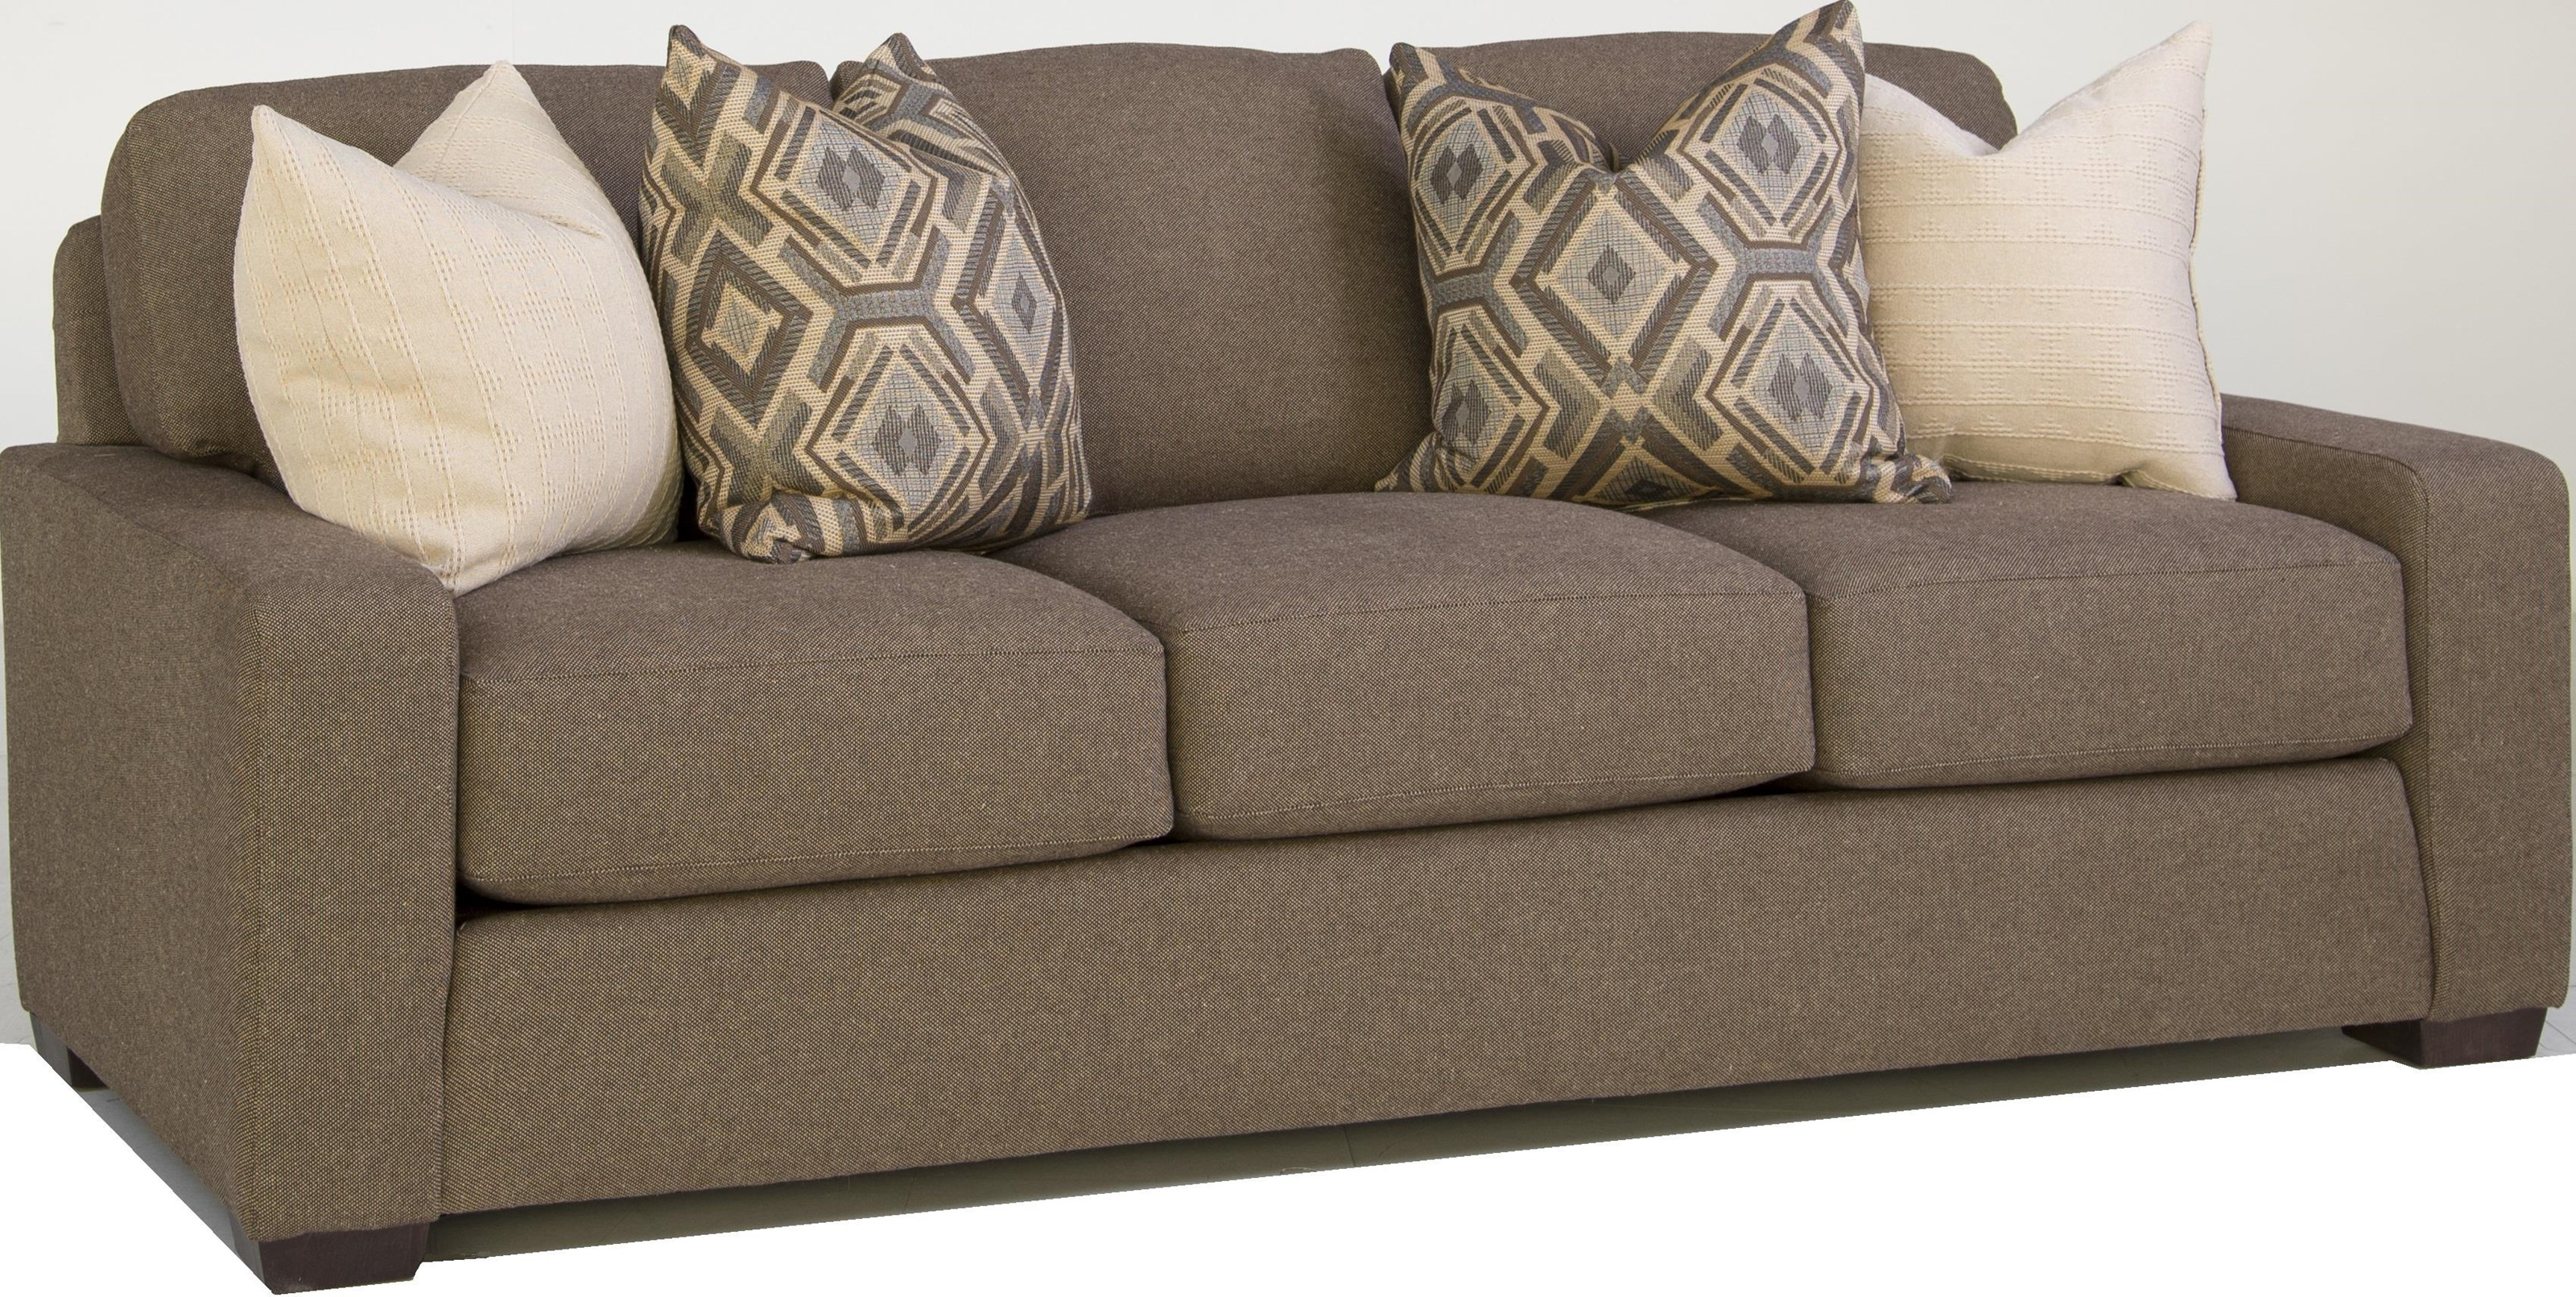 Greencastle Sofa by Smith Brothers at Crowley Furniture & Mattress